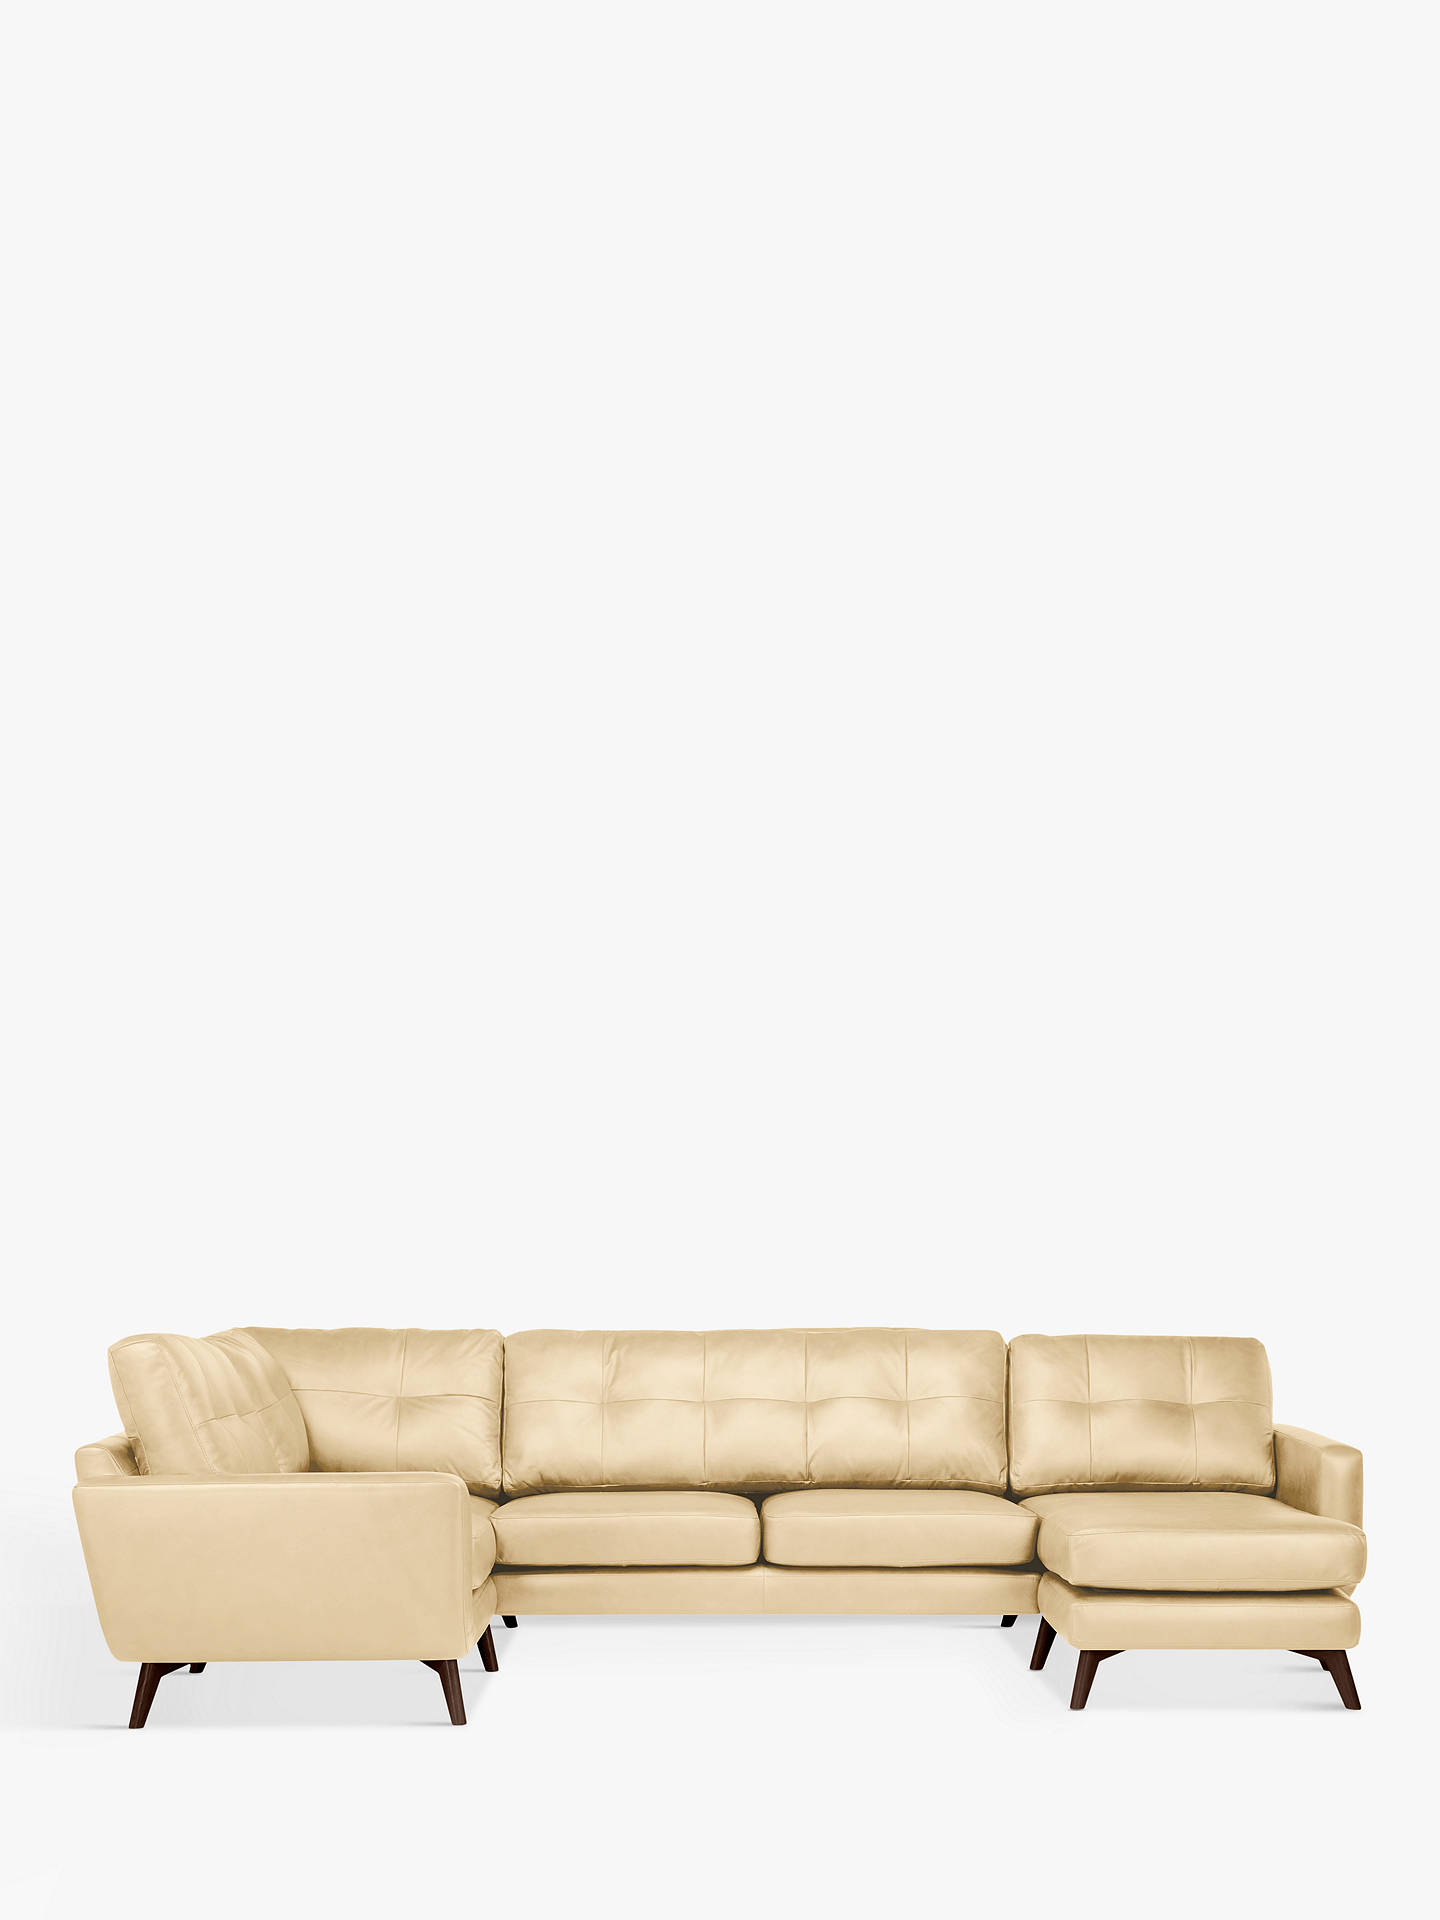 Buy John Lewis & Partners Barbican Leather RHF Medium Corner Chaise End Sofa, Dark Leg, Nature Cream Online at johnlewis.com